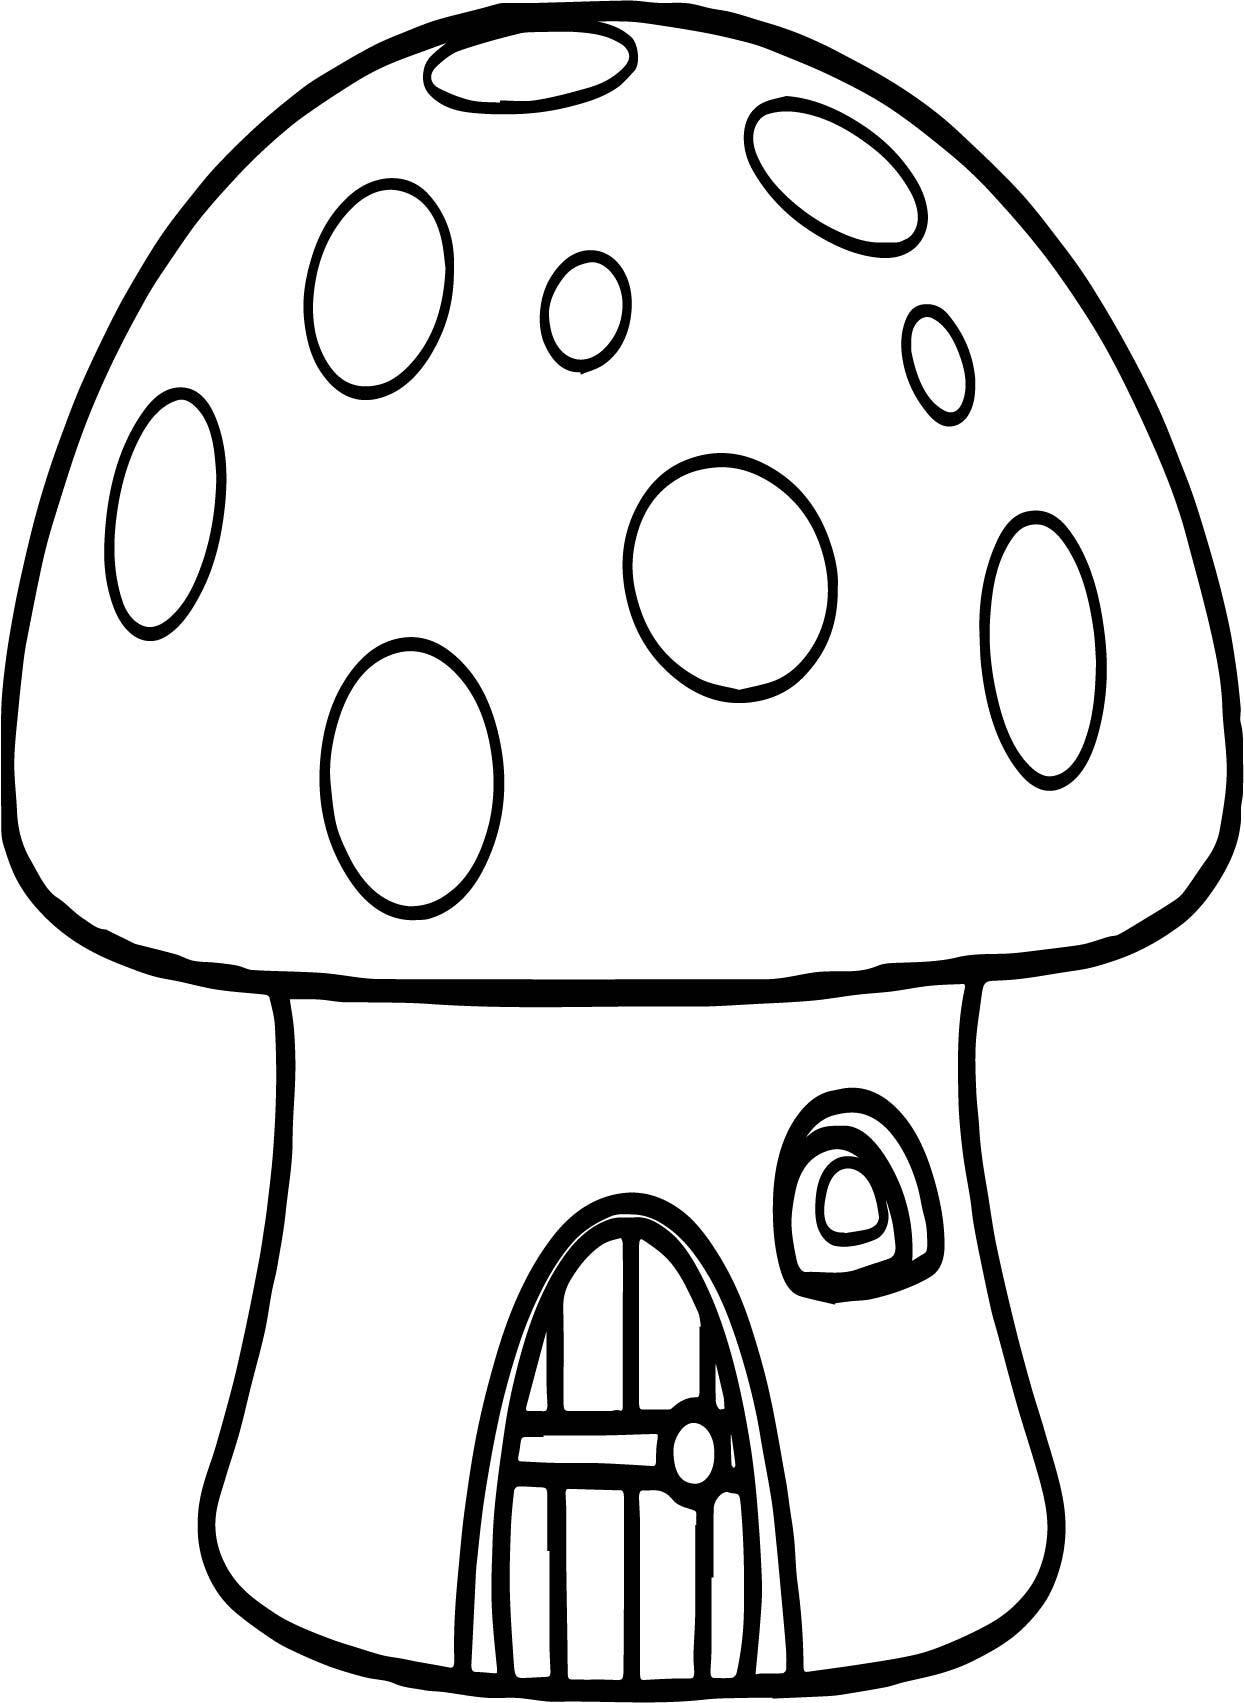 mushroom house gingerbread house coloring page